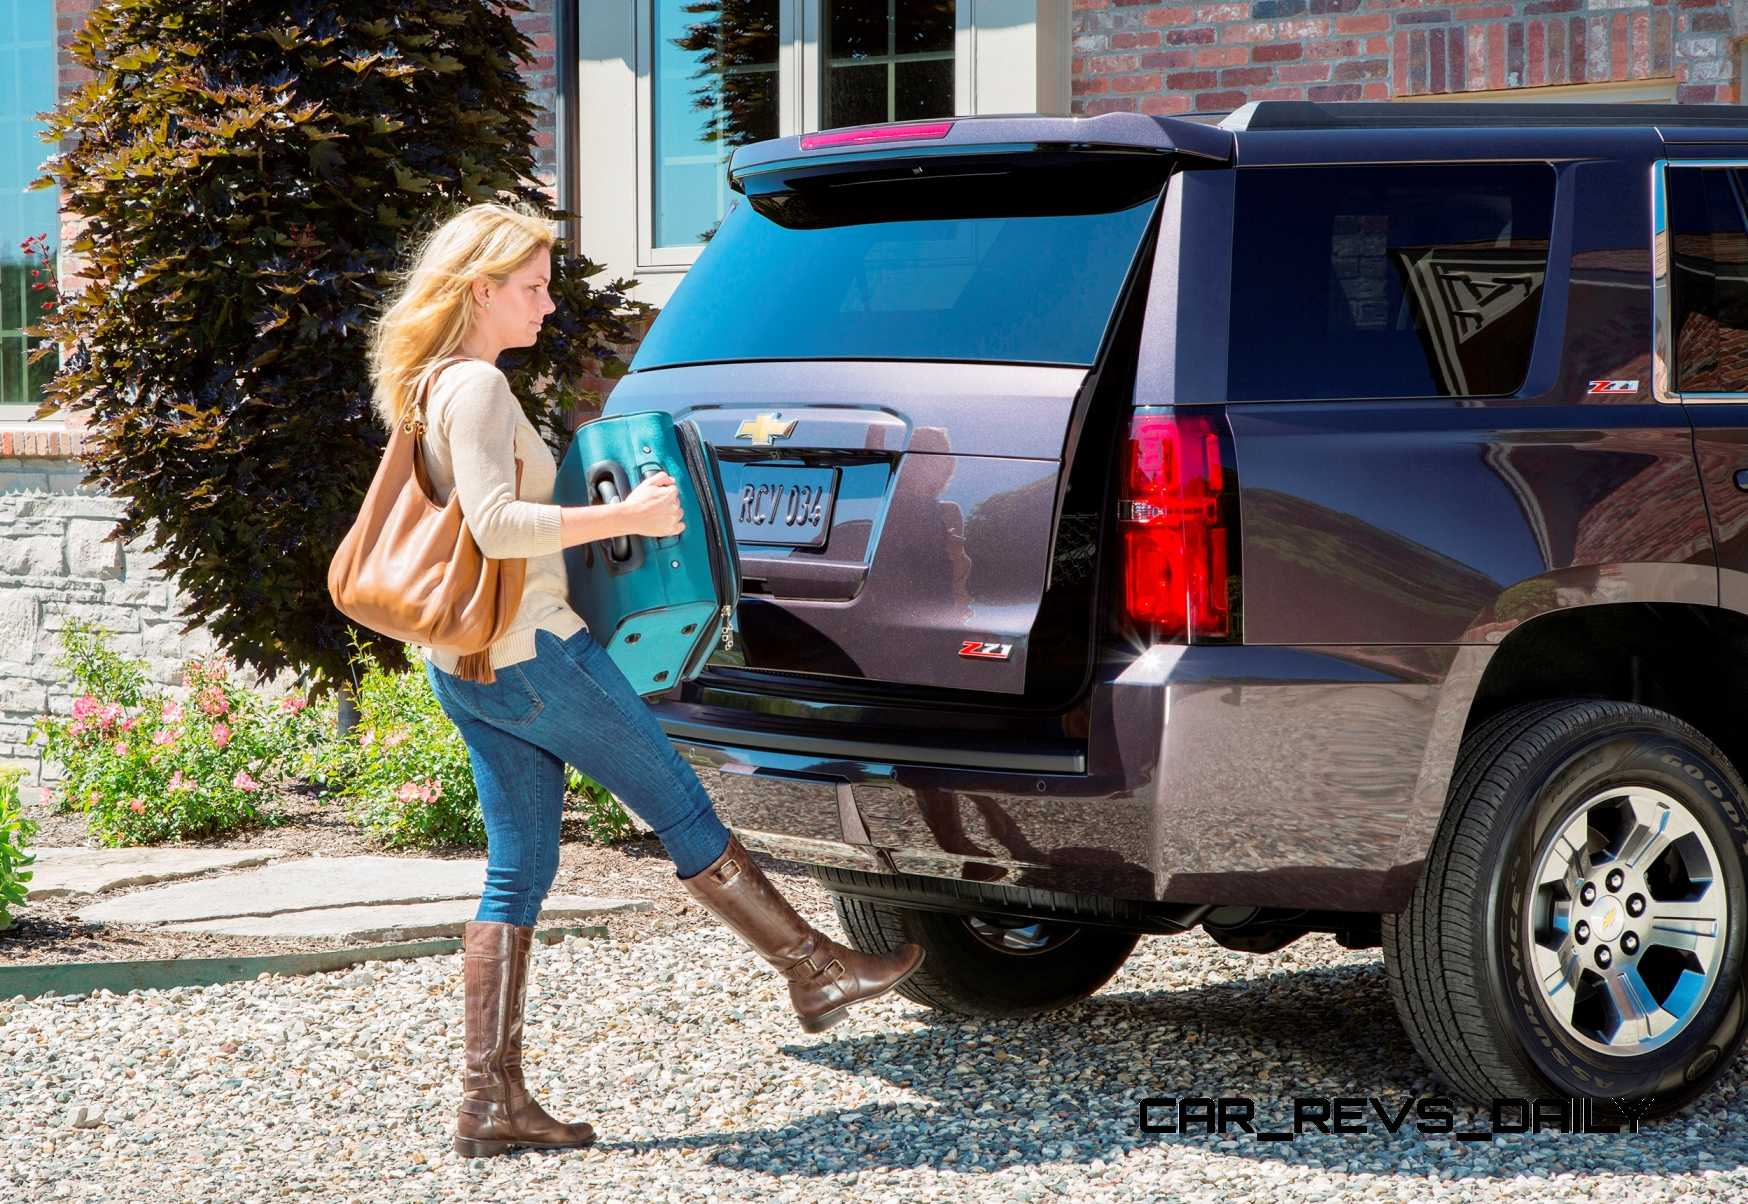 Suburban Vs Tahoe >> 2015 Chevrolet Tahoe and Suburban Add Z71 Off-Road Package - Arriving November Nationwide